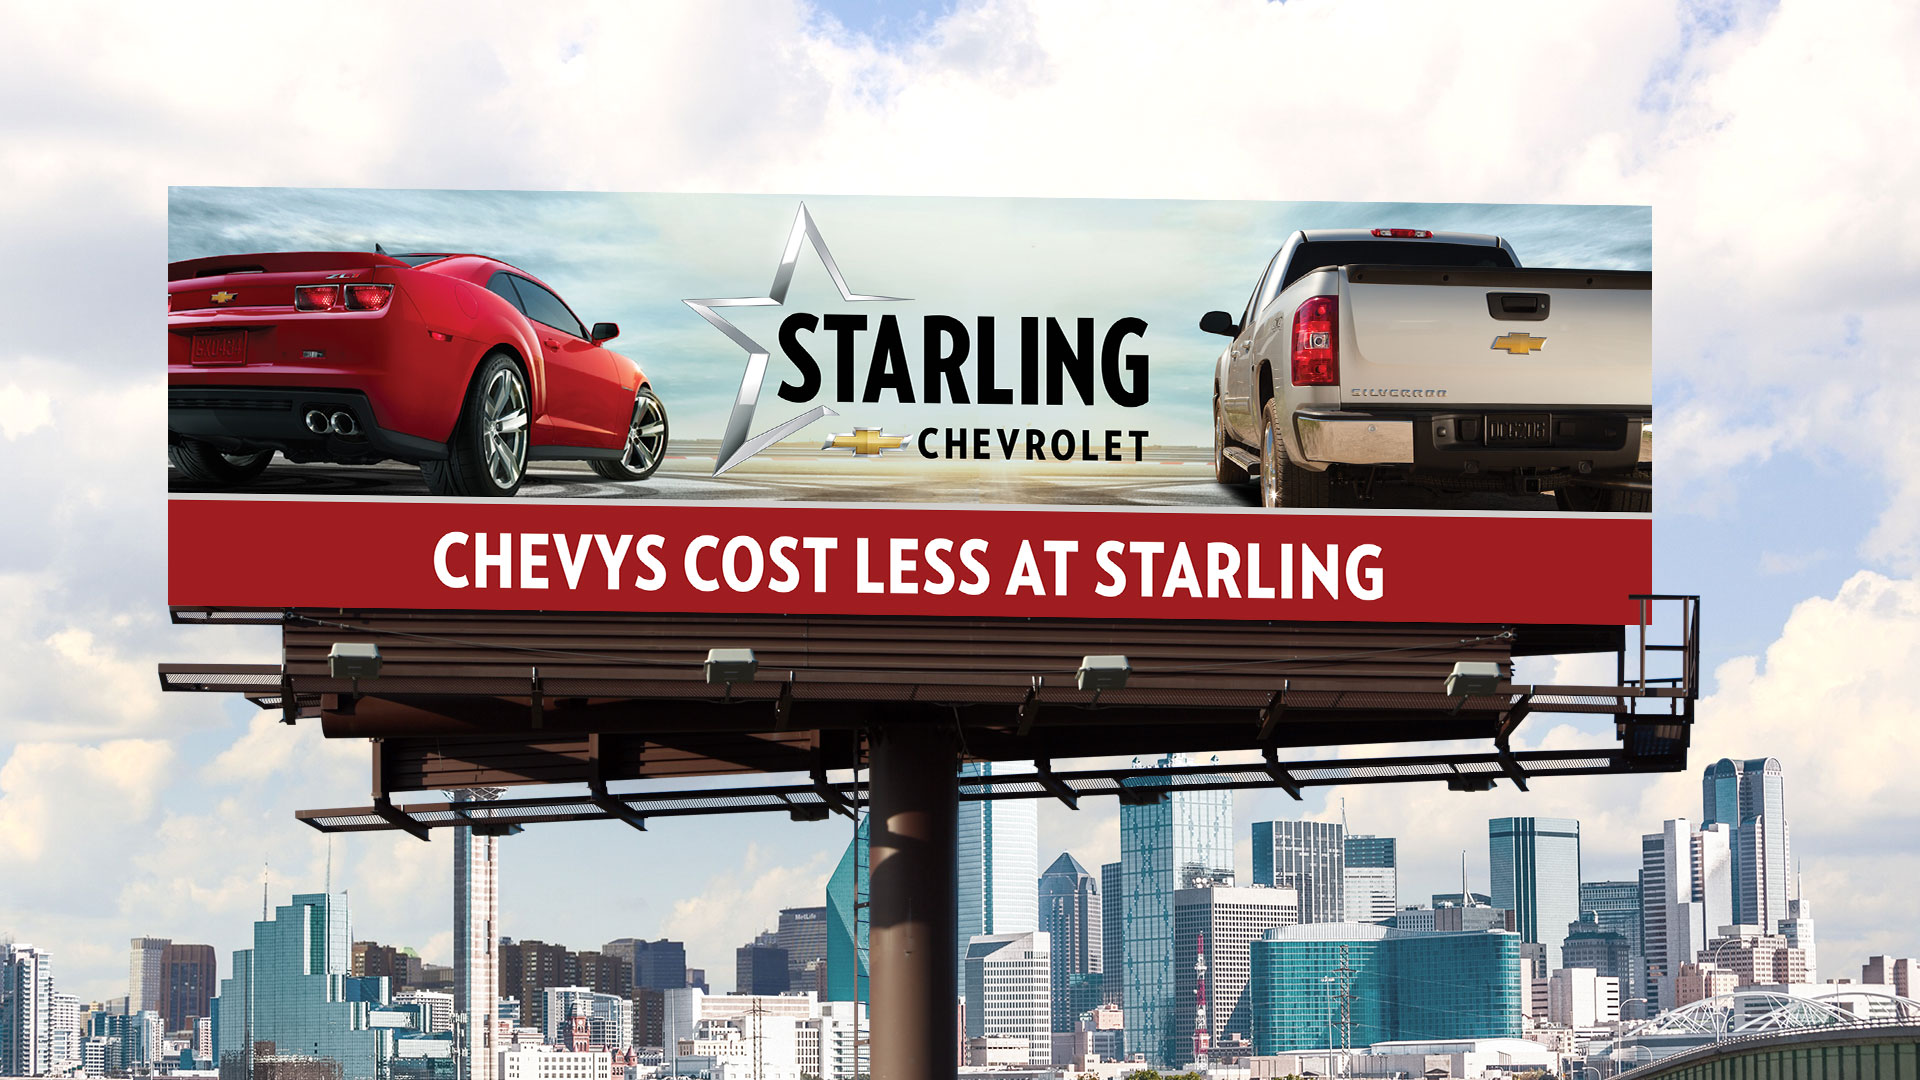 Billboard: Starling Chevrolet Chevys Cost Less